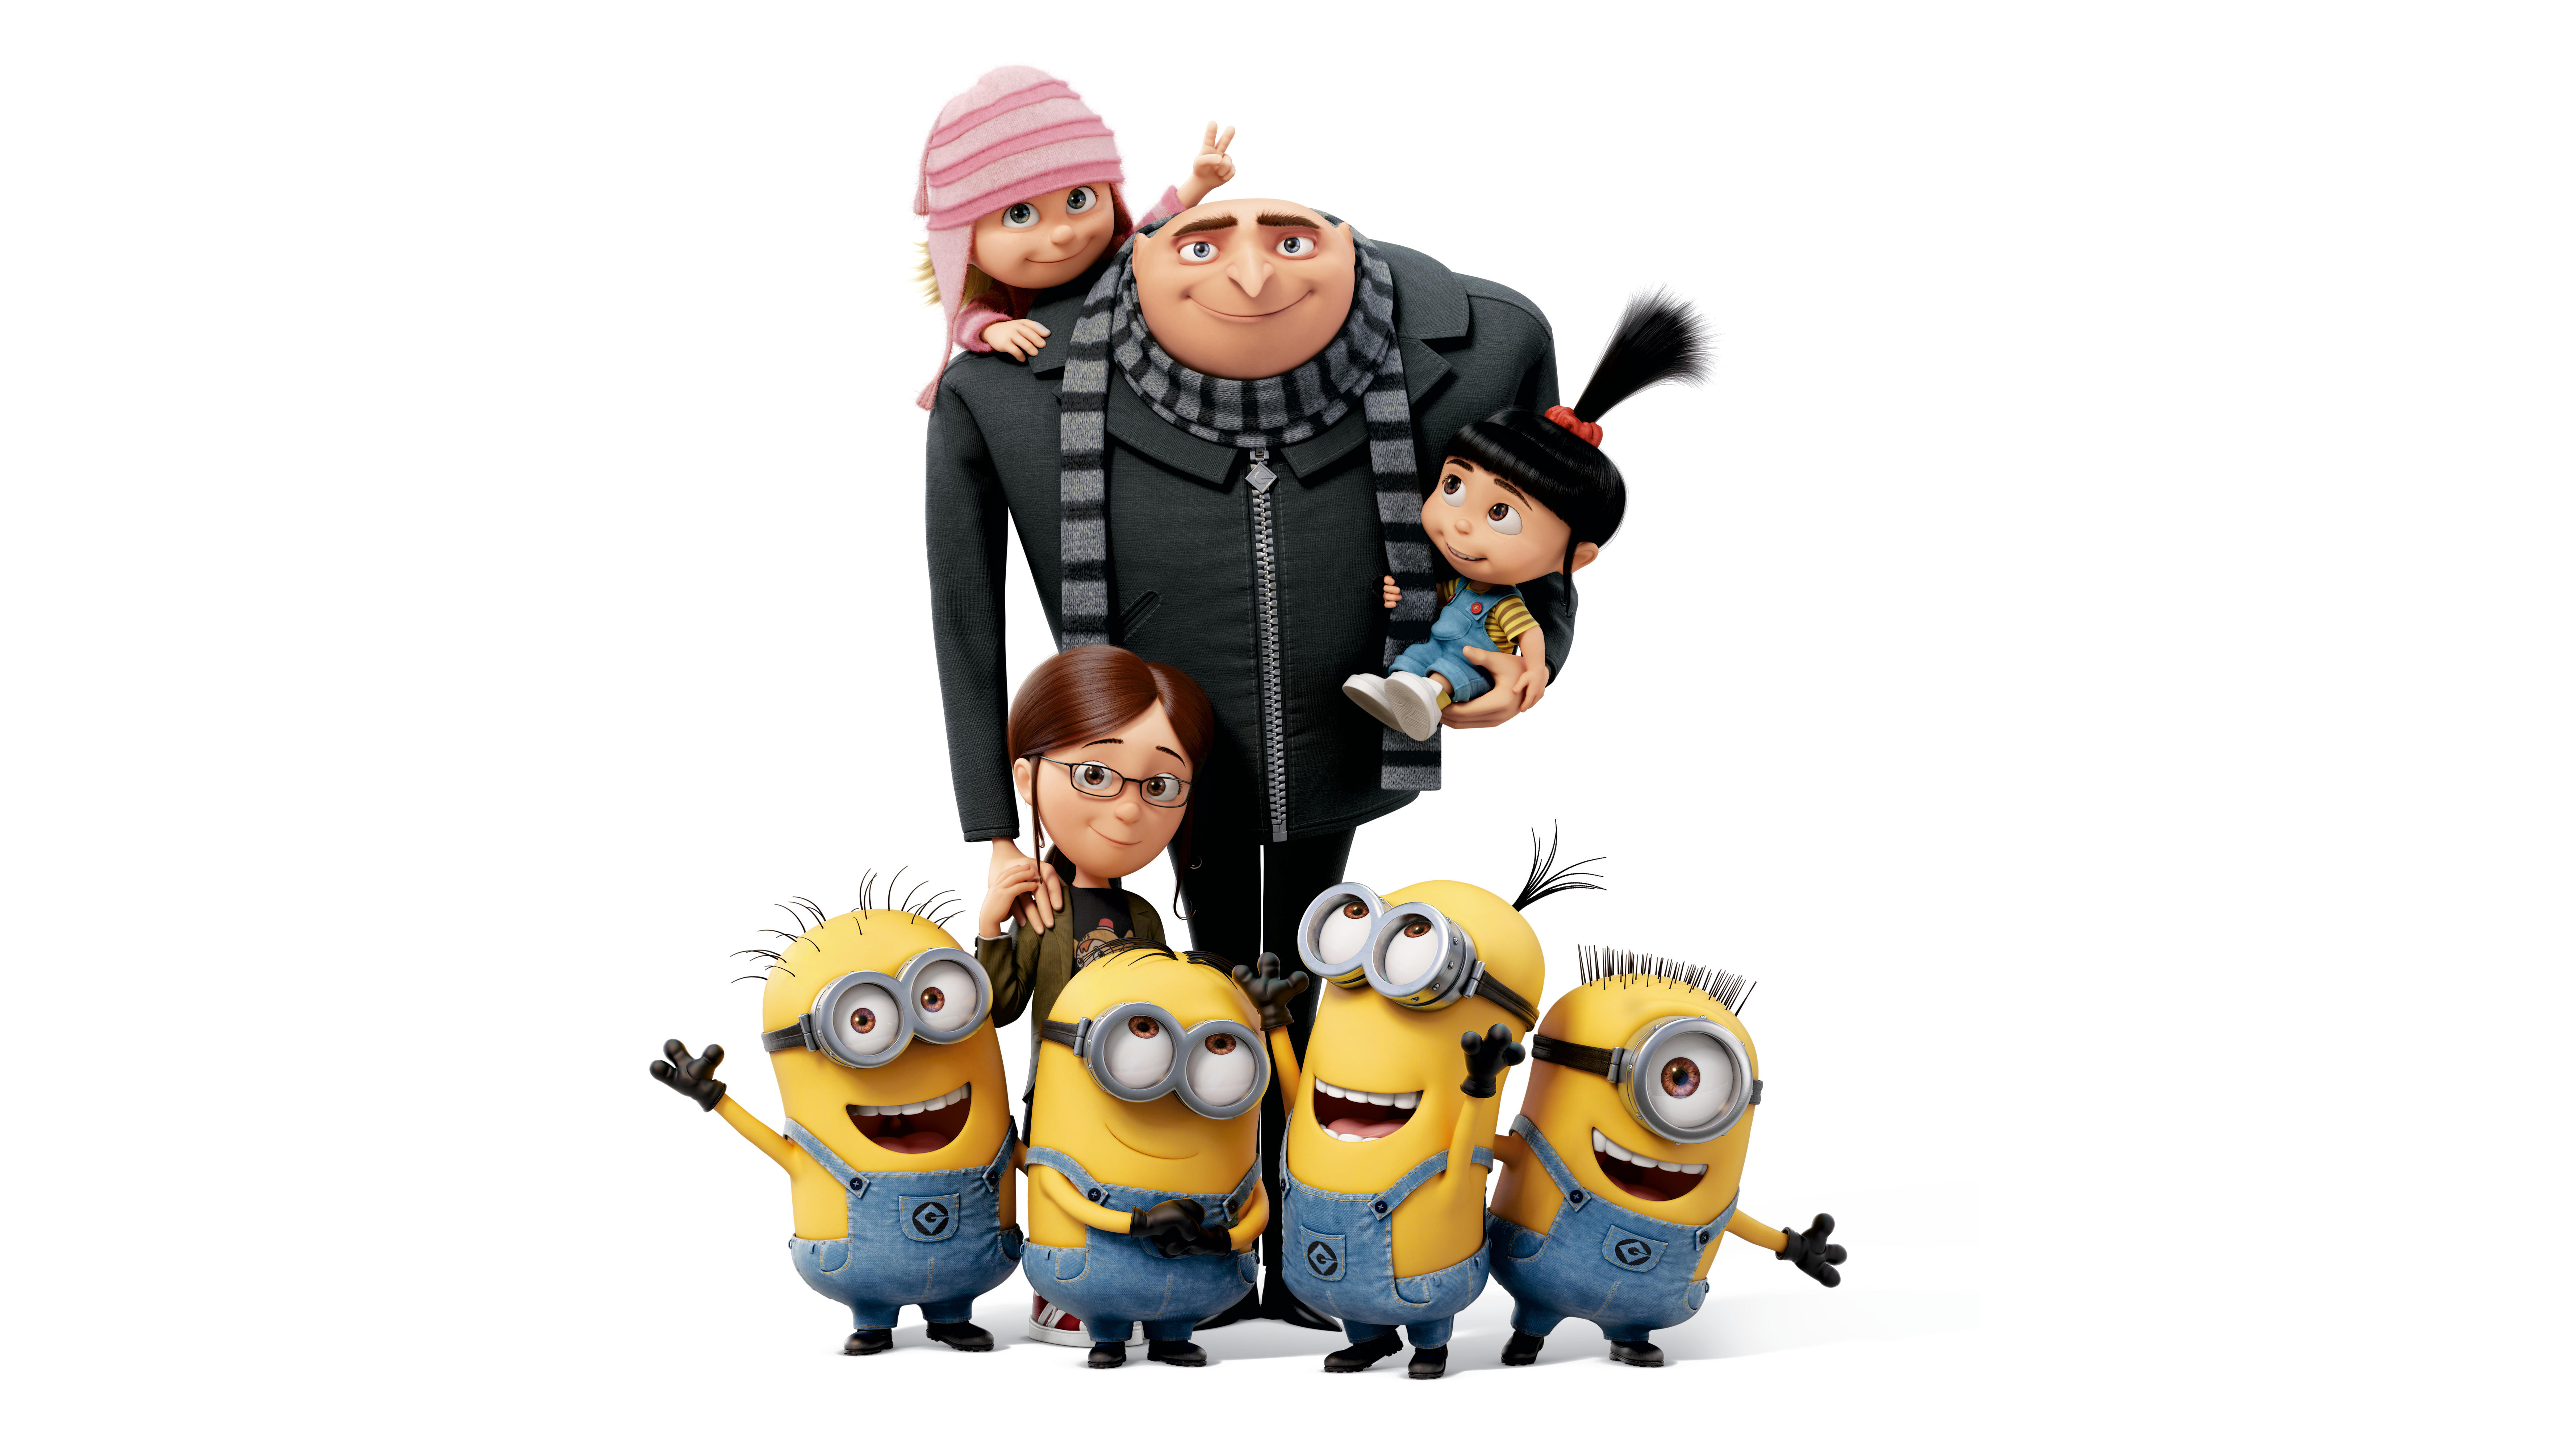 Despicable Me Gru And Minions - HD Wallpaper